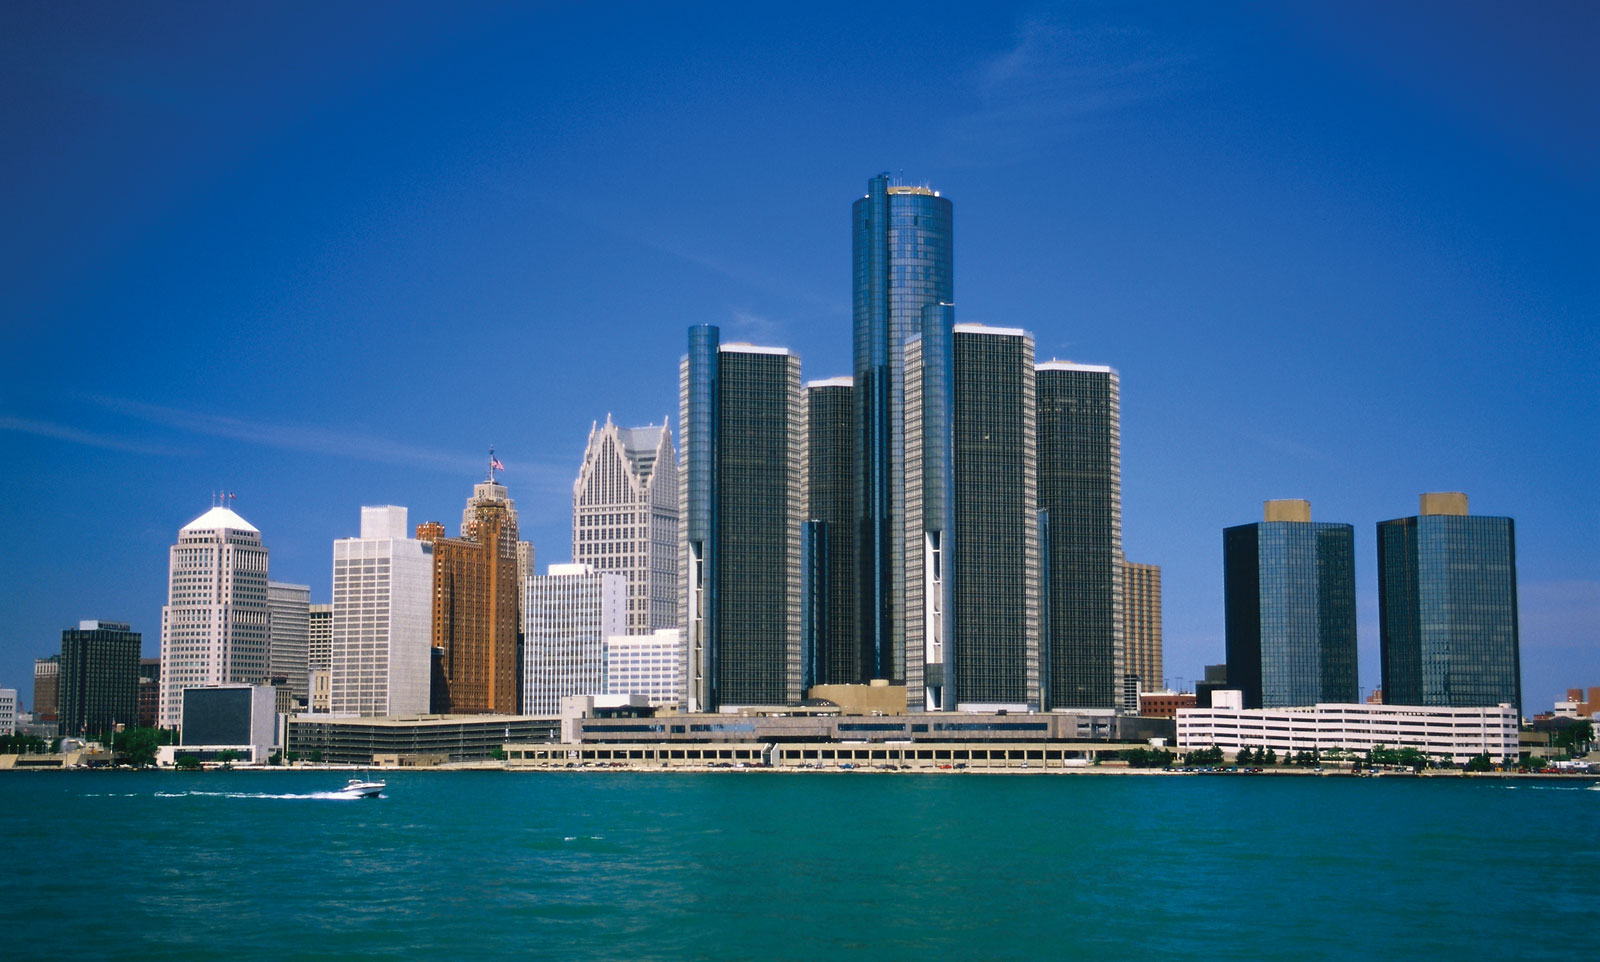 Best Historical Places to Visit in Detroit?